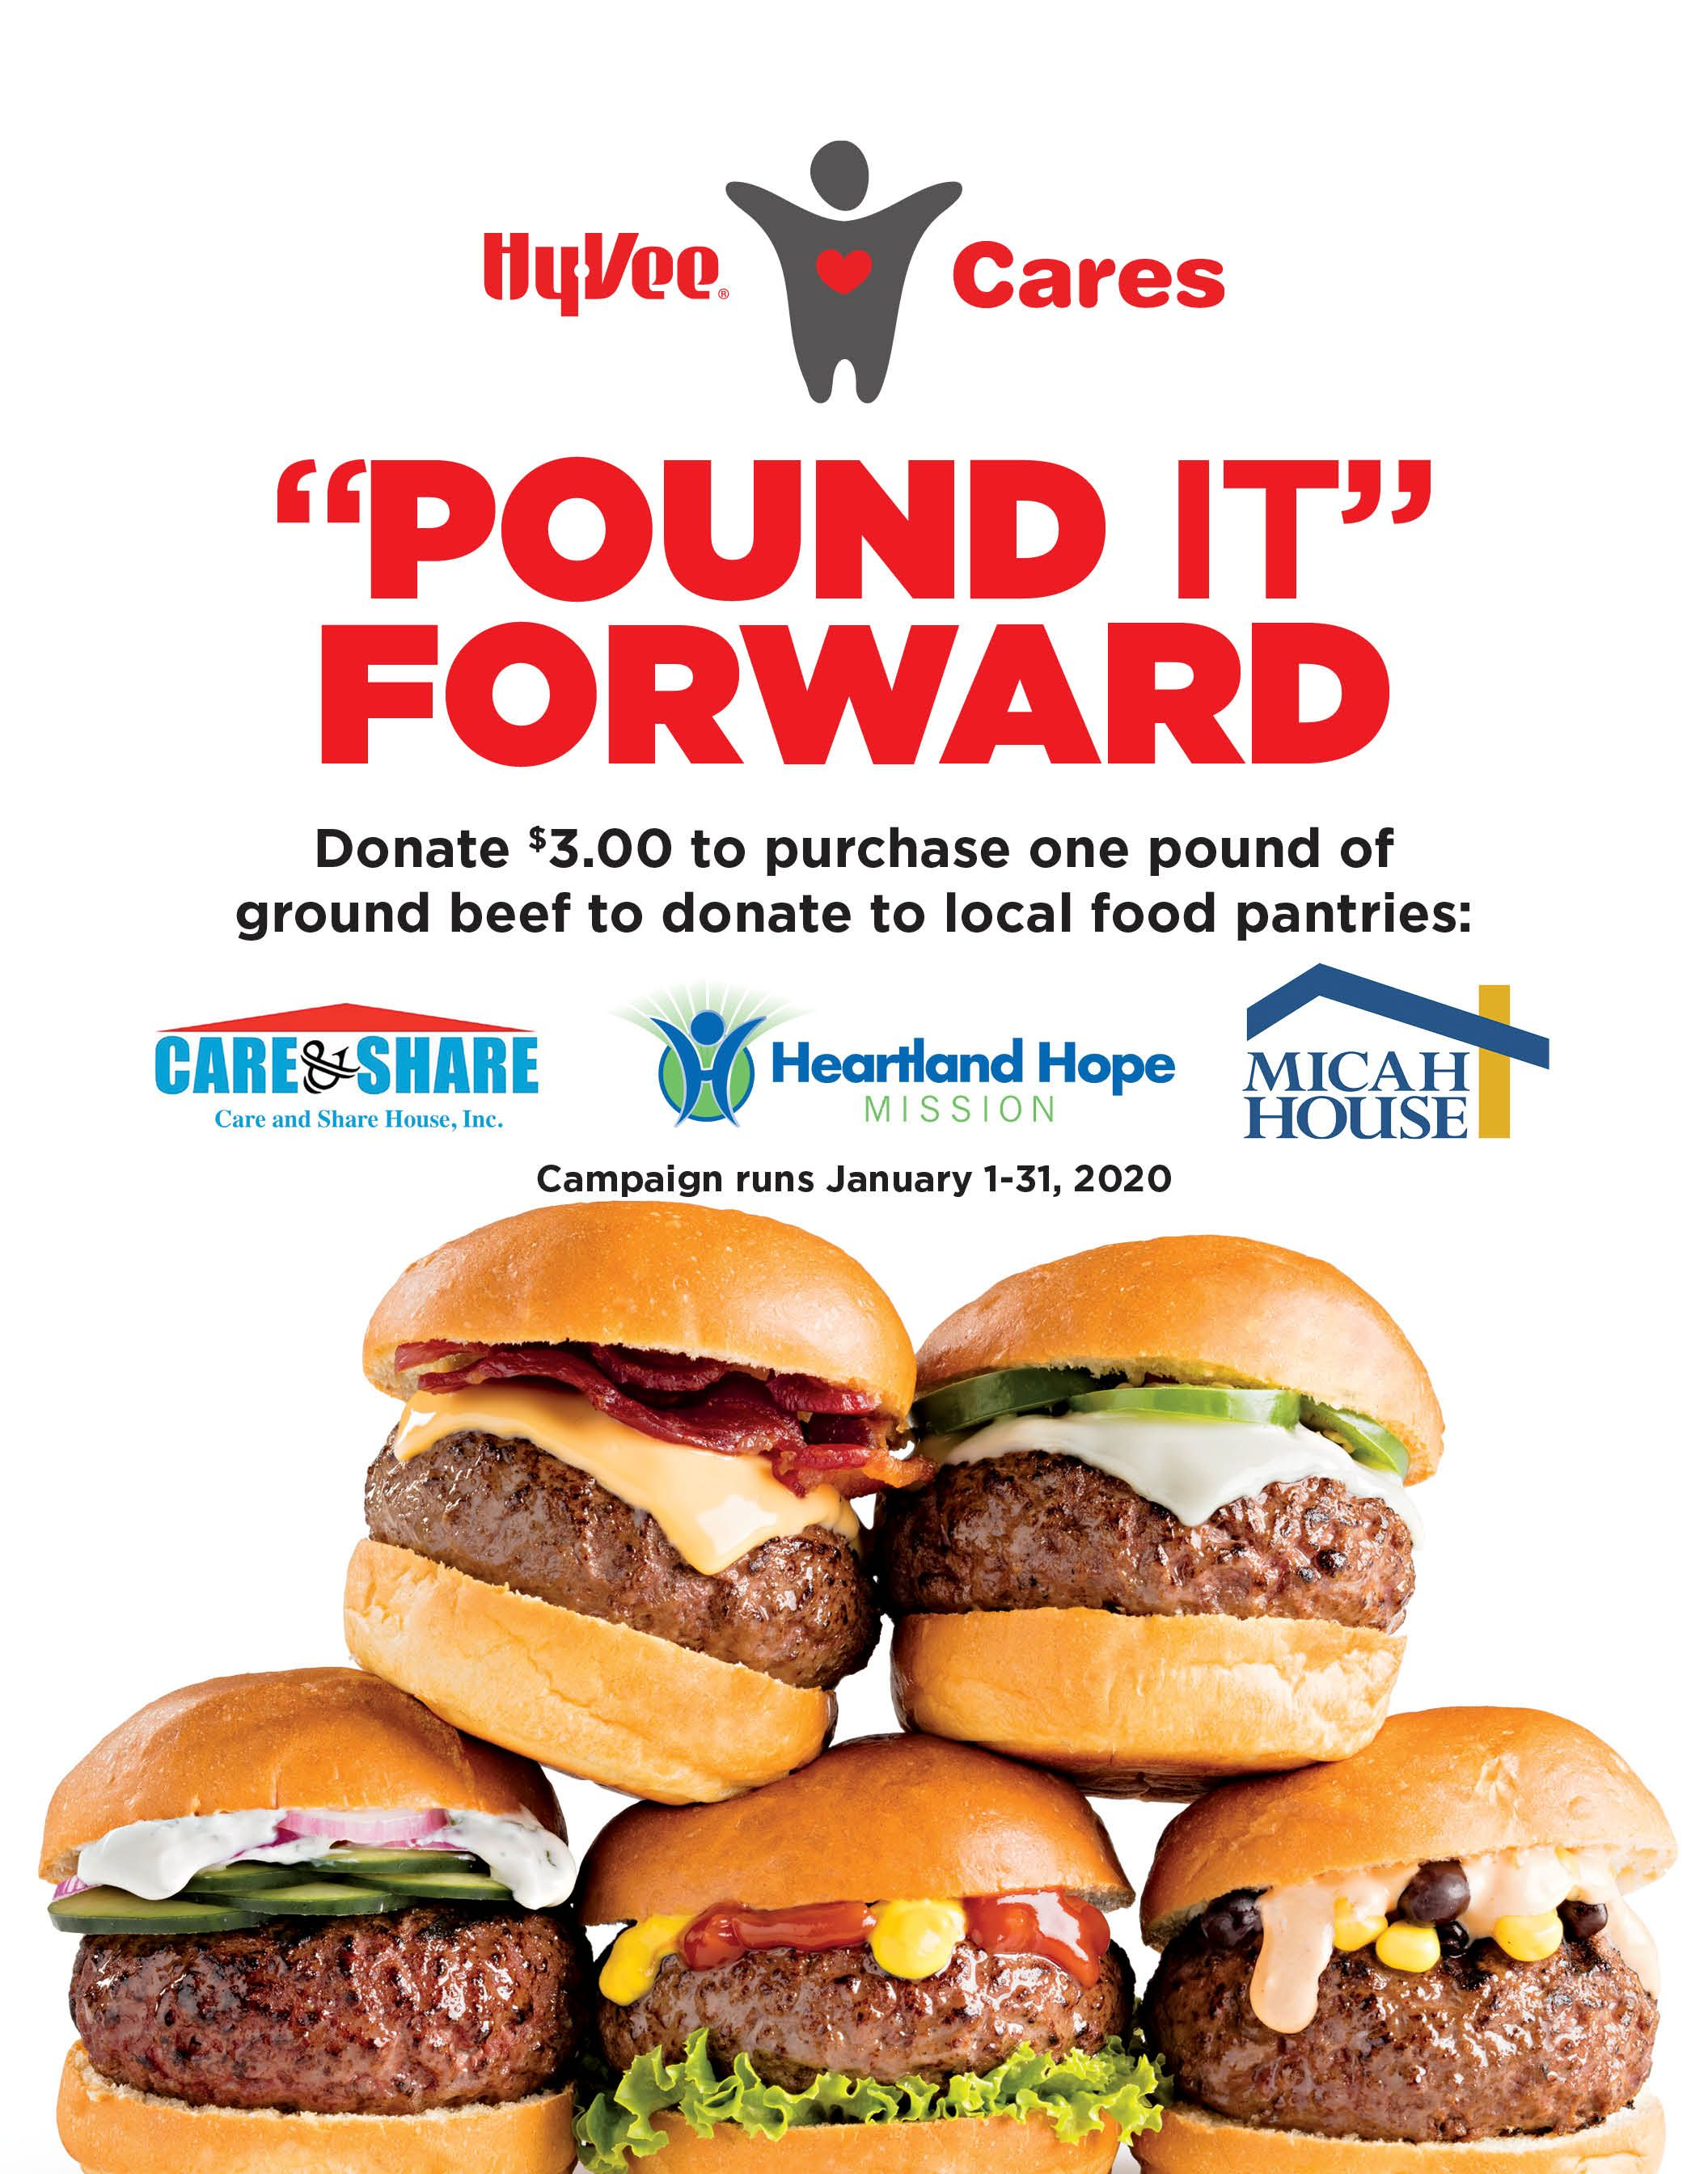 """Pound it Forward"" Campaign Going On Now at Omaha area Hy-Vee stores."